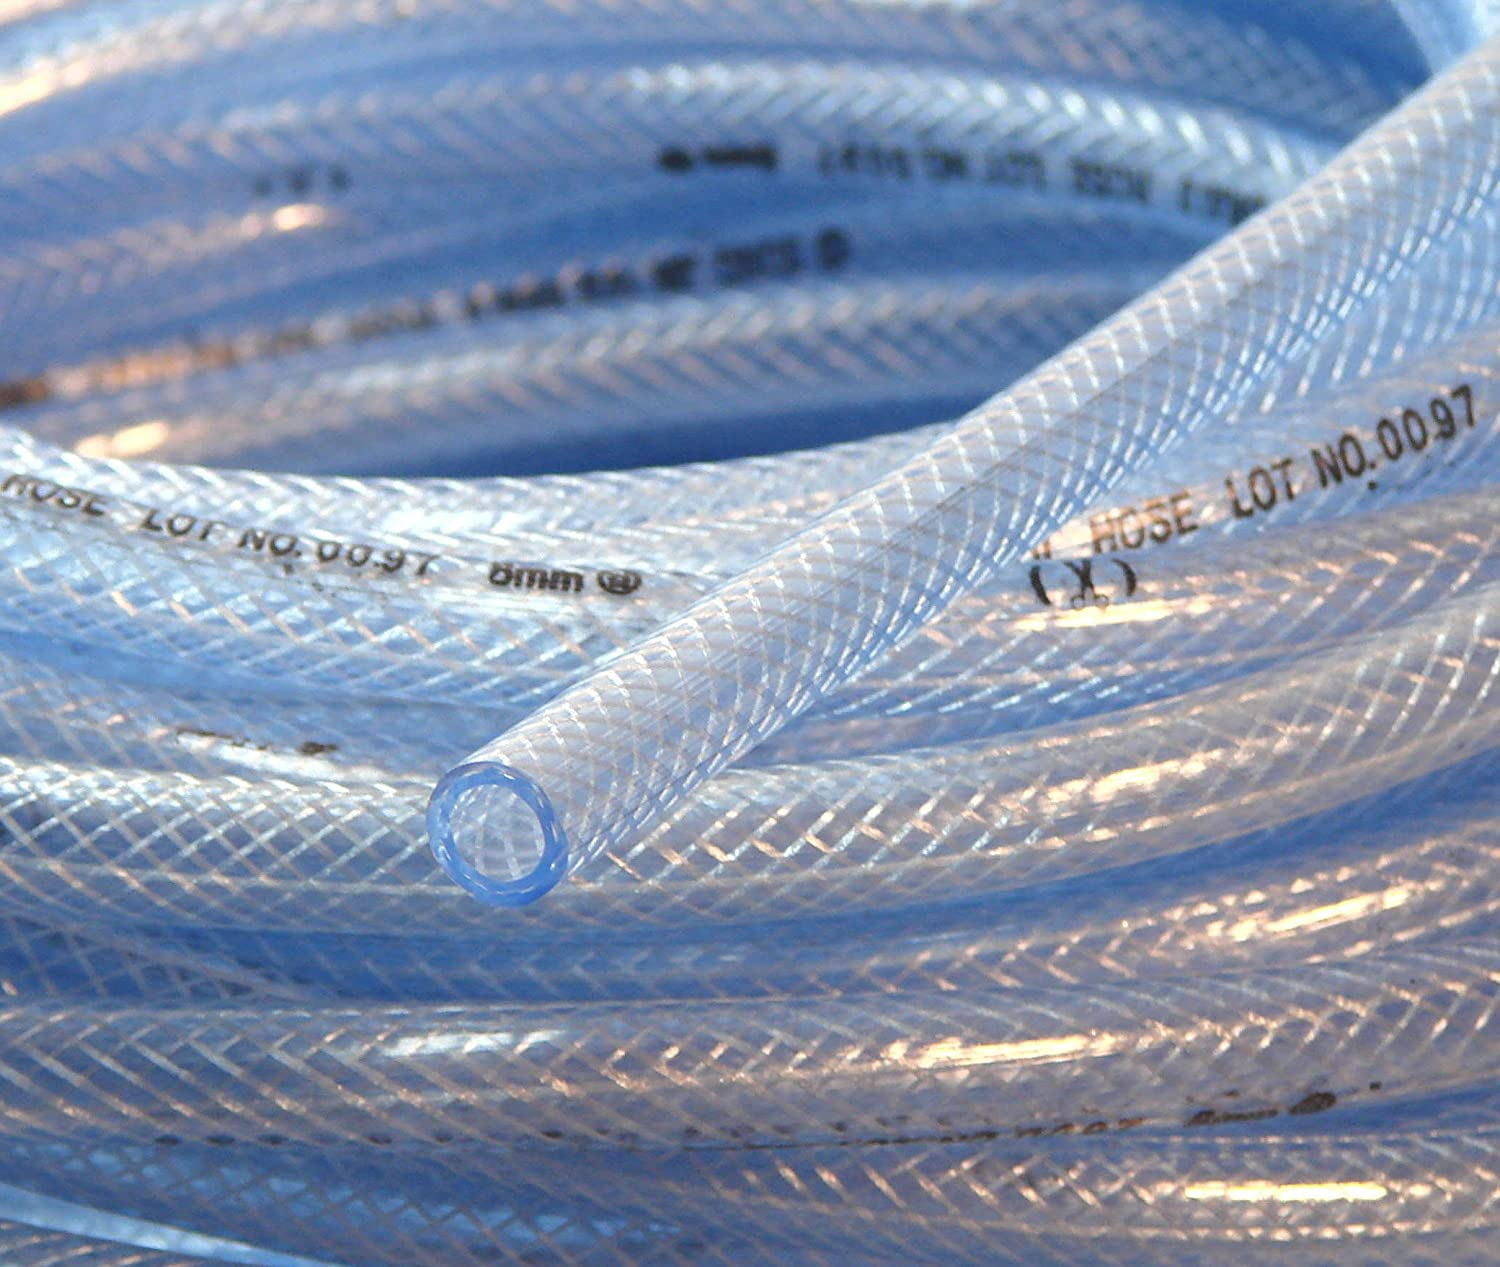 5//8 ID 33Ft 10 Metre High Pressure Braided PVC Tubing Clear Hose Braid Reinforced Pipe Water Delivery SMI 16mm